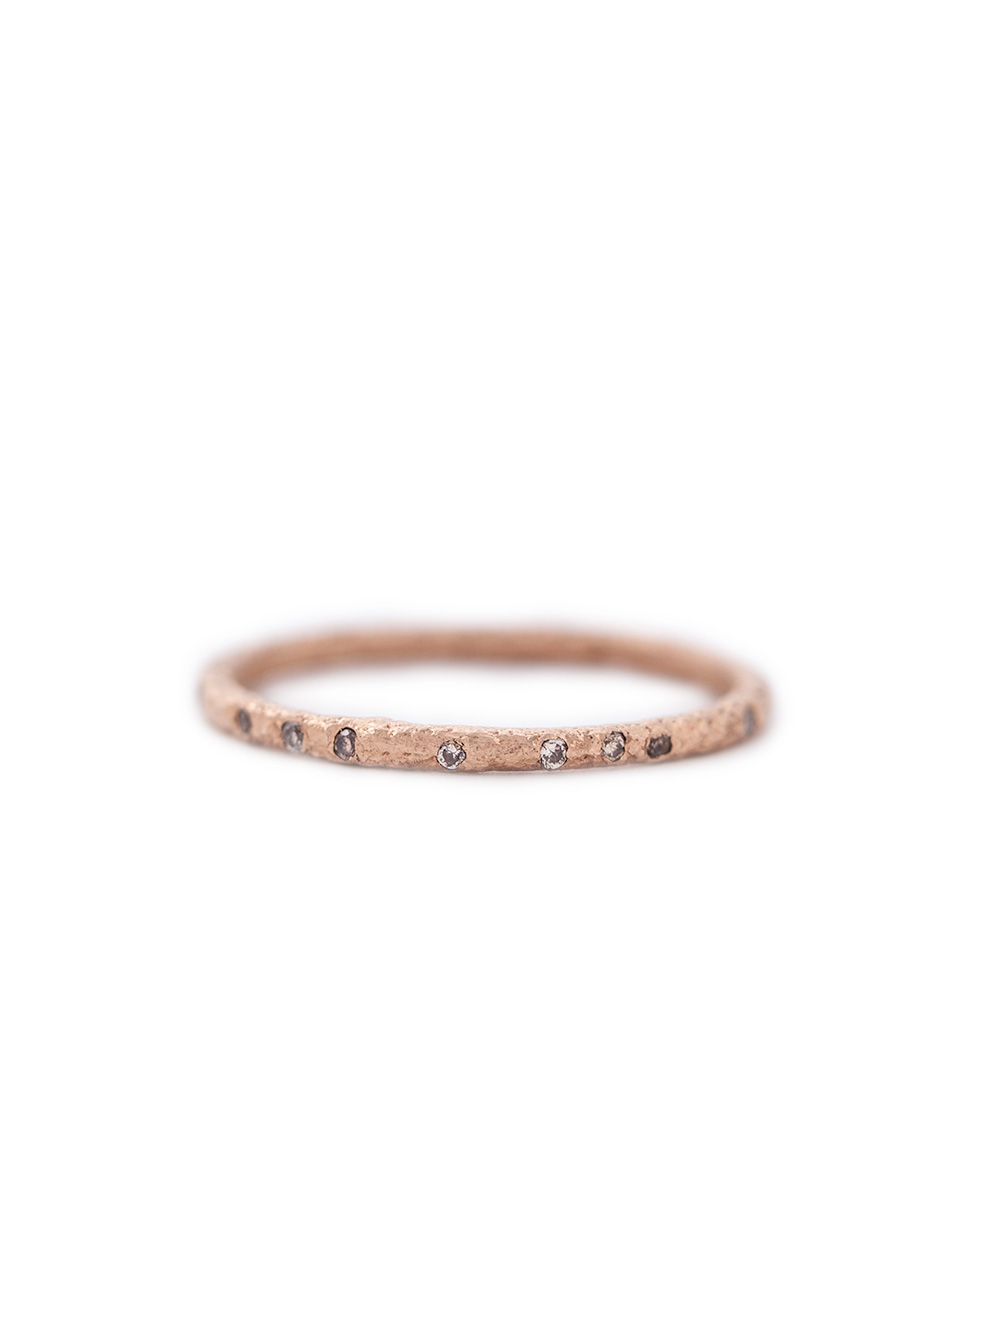 Rose gold ring with 16 champagne diamonds, £1420